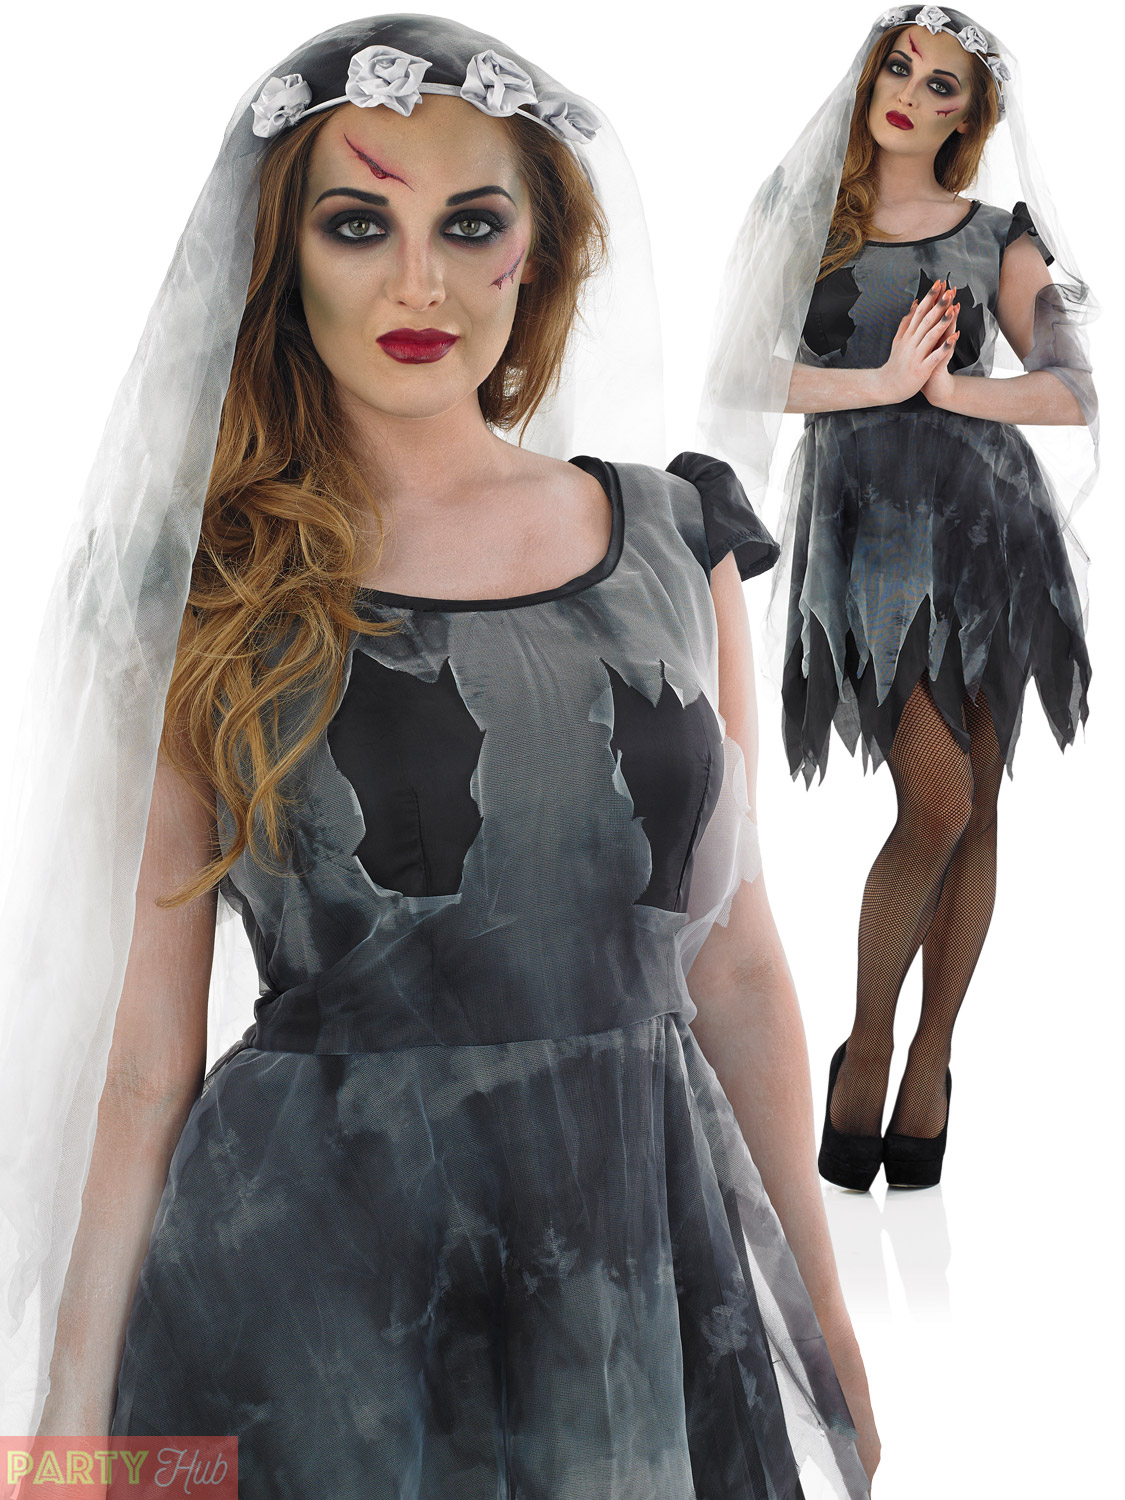 Details about Ladies Corpse Bride Costume Zombie Bride Halloween Fancy  Dress Womens Plus Size